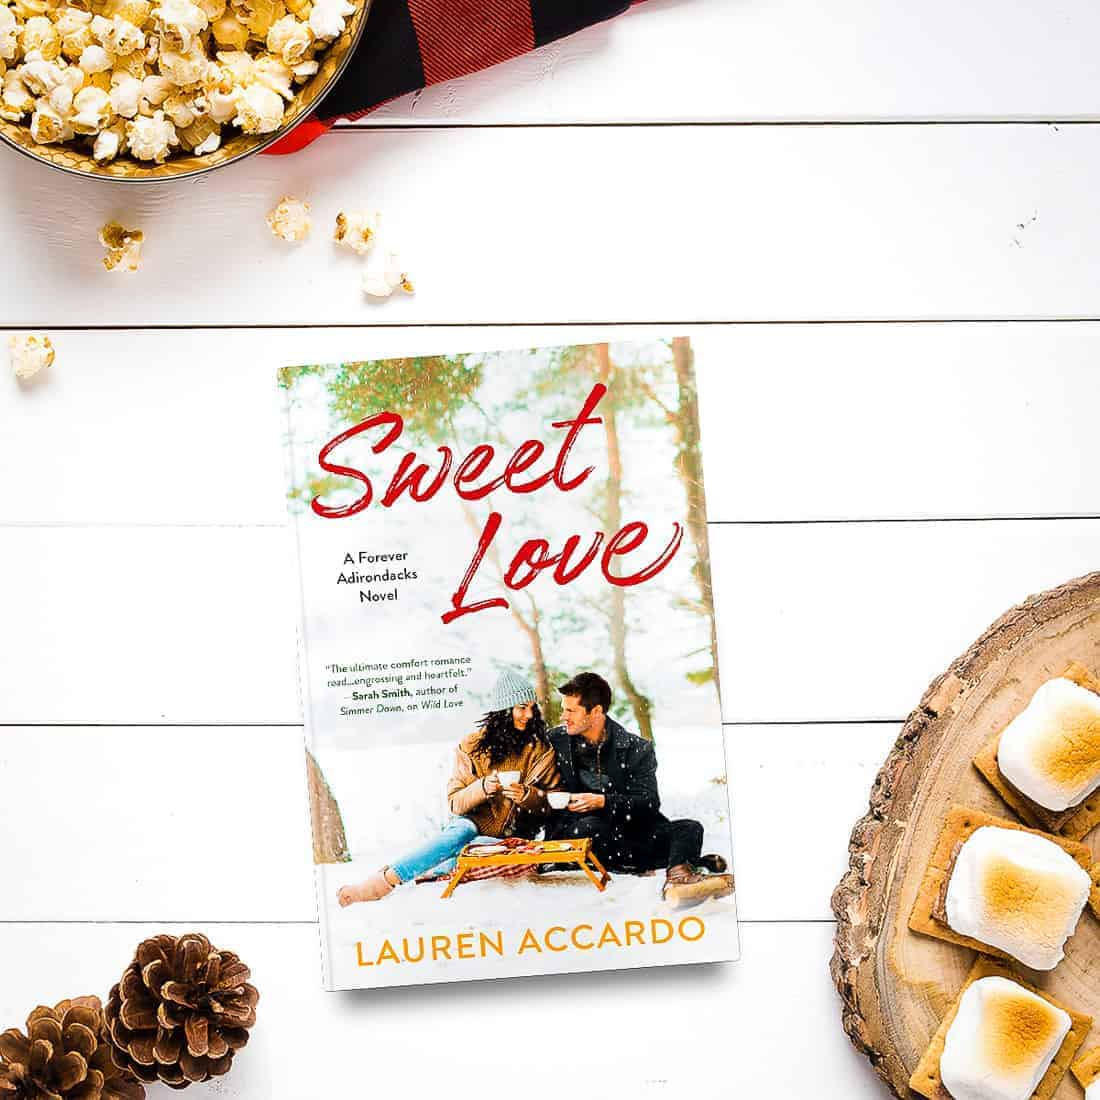 Enjoy this exclusive excerpt from SWEET LOVE by Lauren Accardo, the second book of the Forever Adirondacks series!